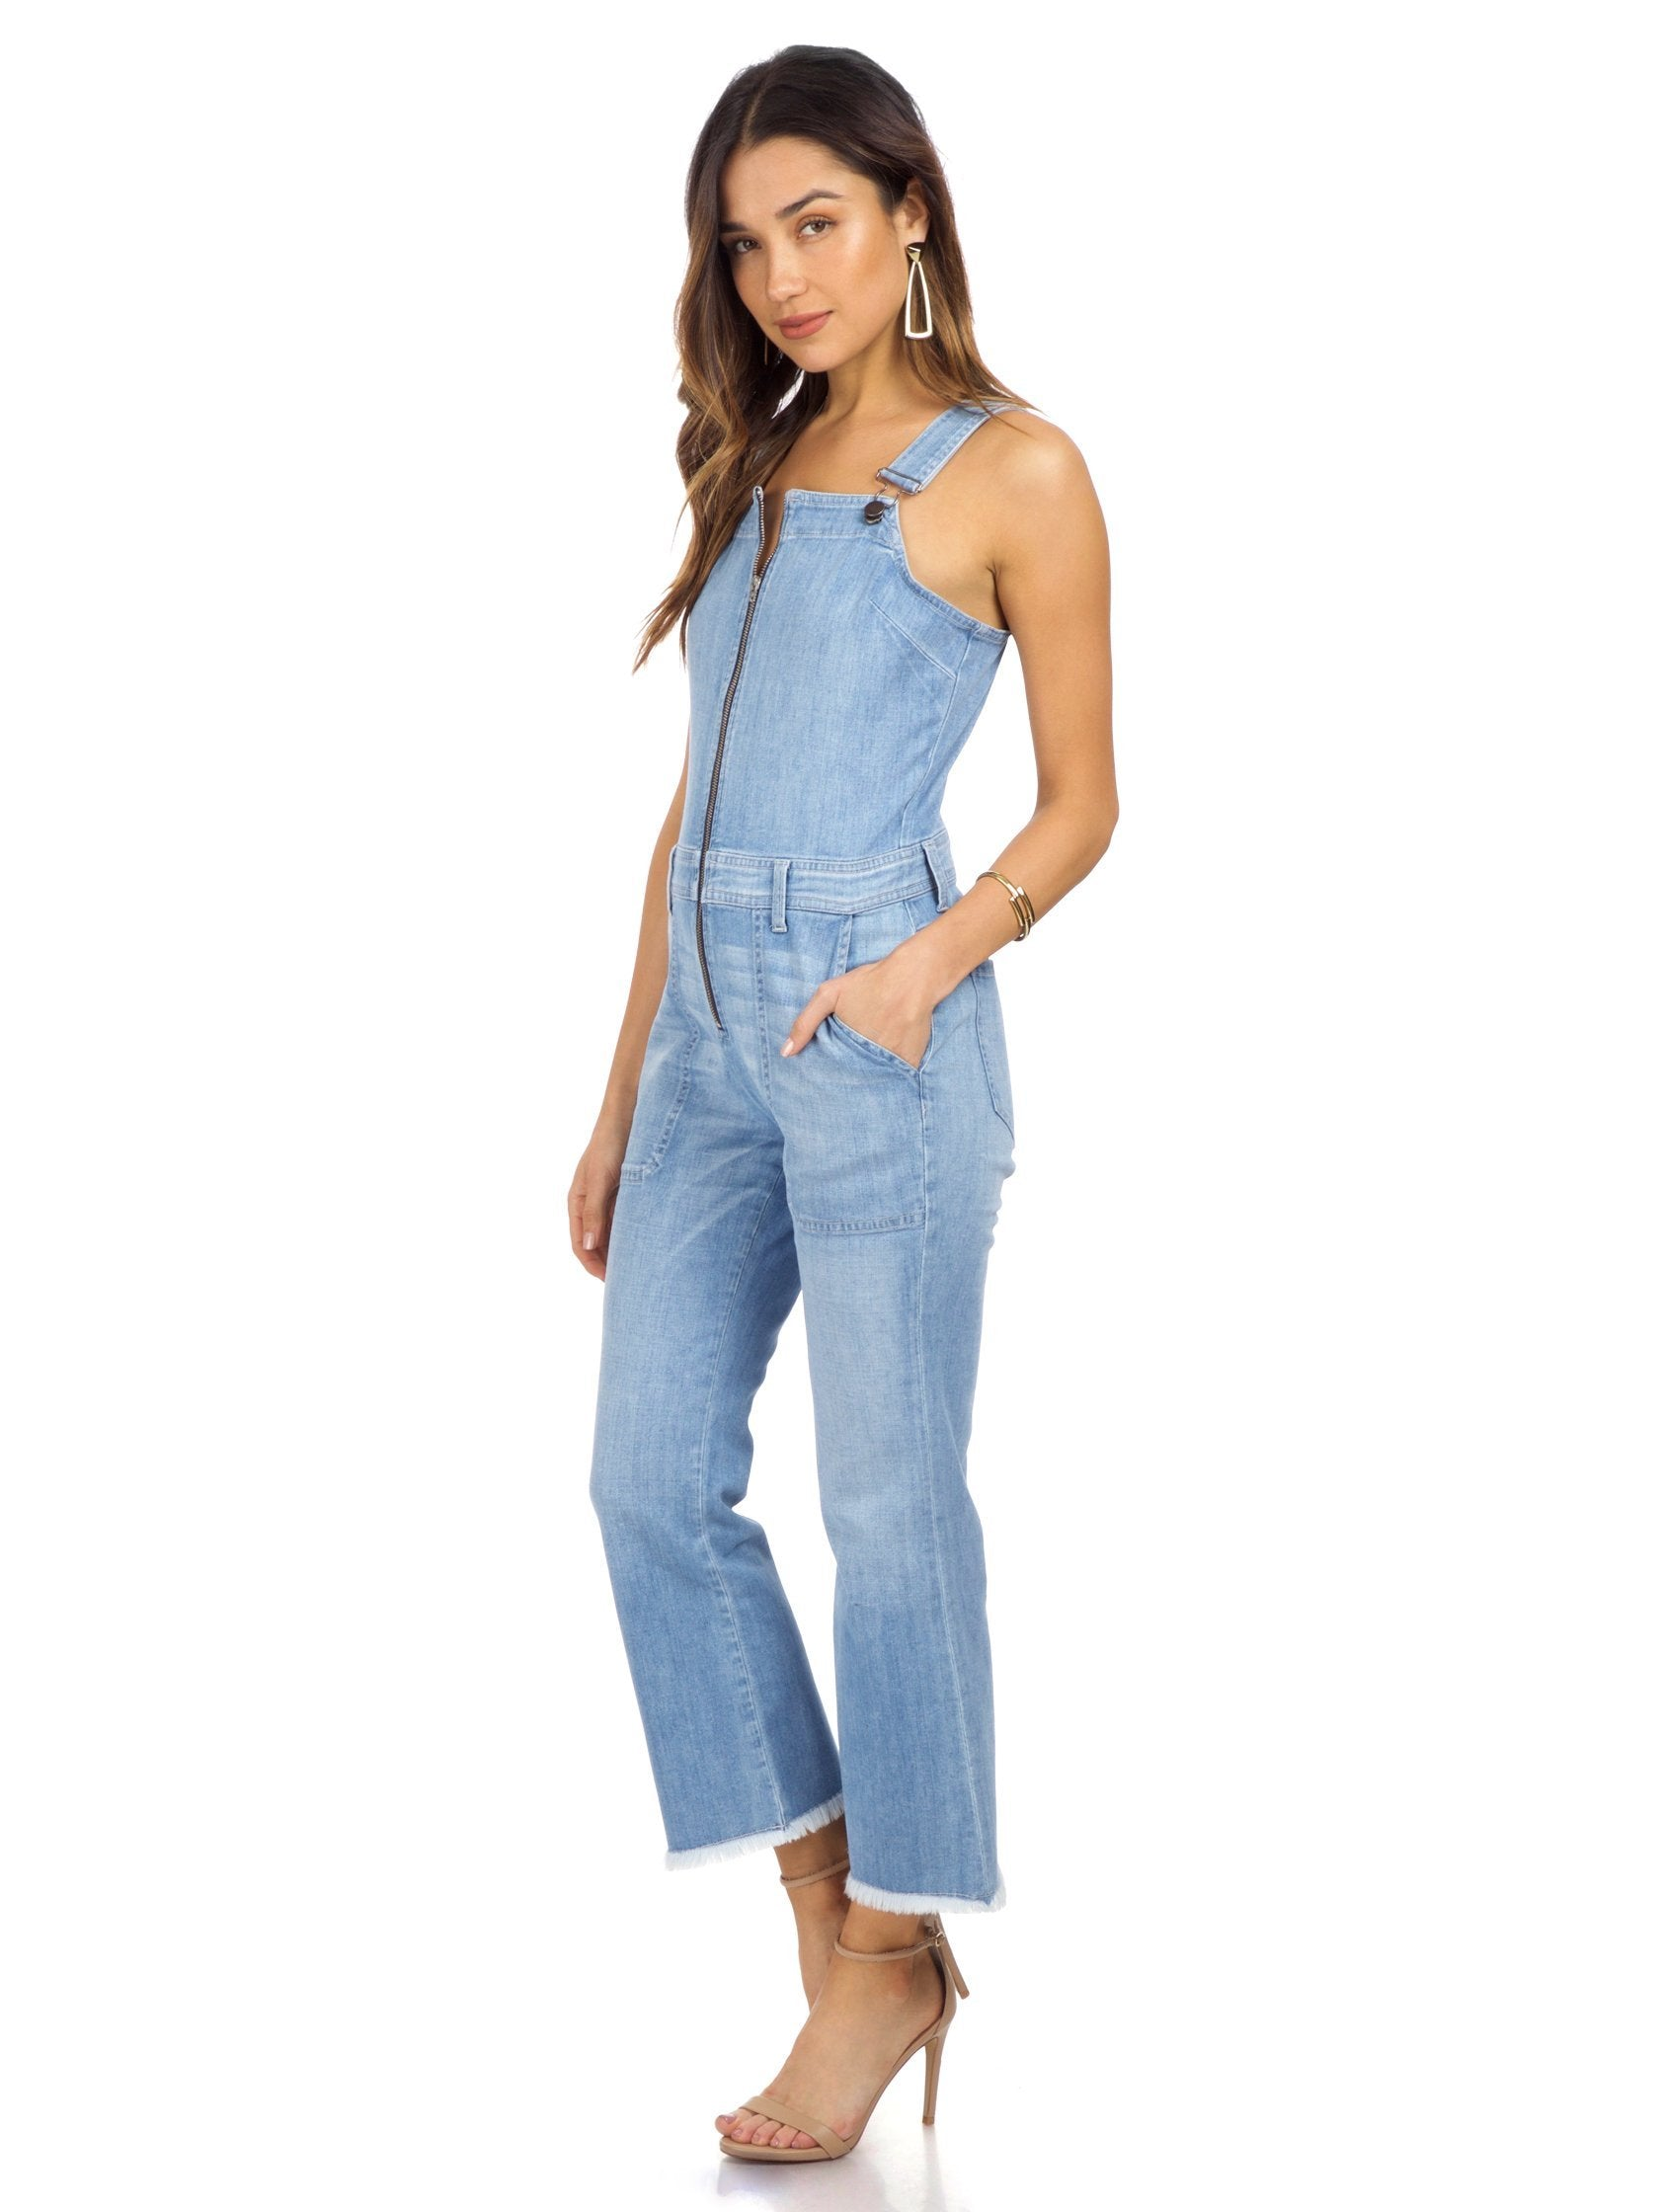 Woman wearing a jumpsuit rental from ei8ht dreams called Flare Overall